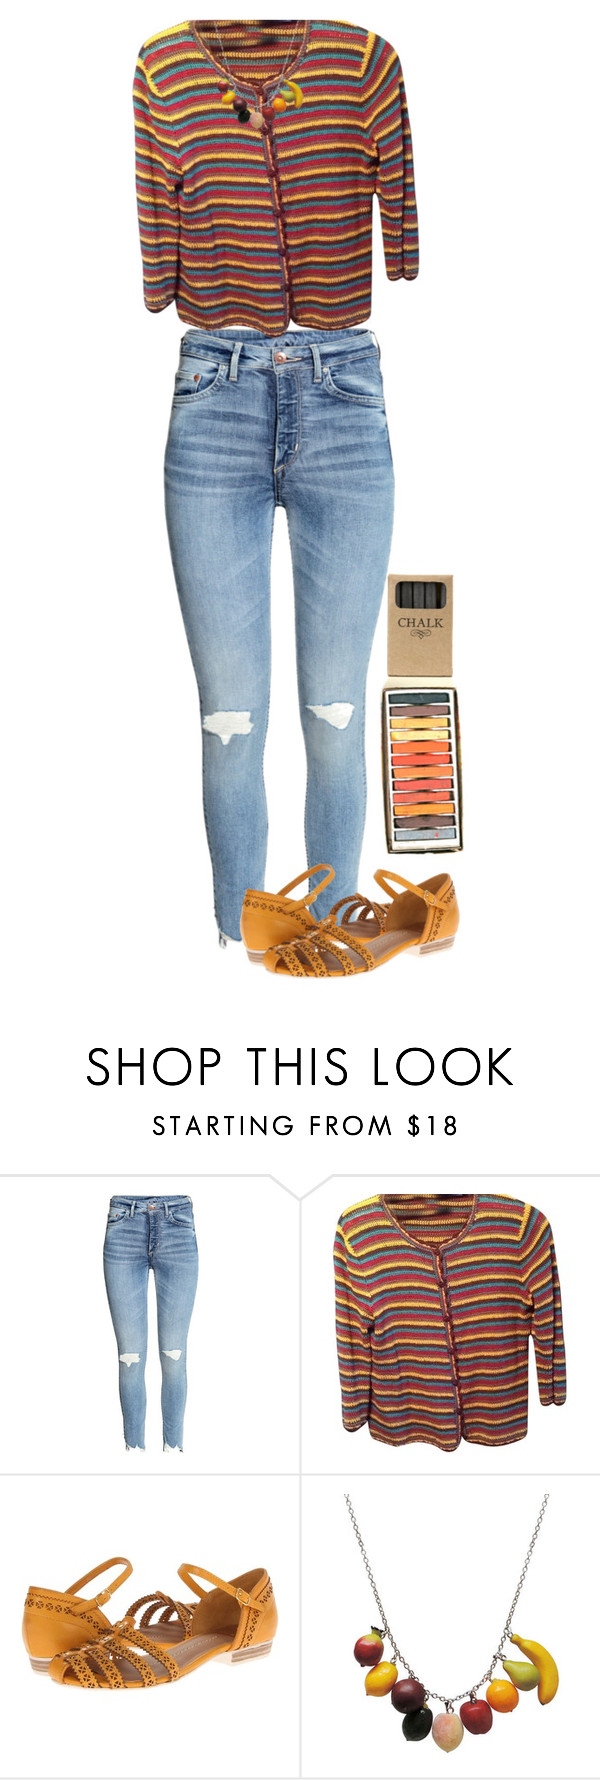 """Untitled #79"" by makenzie-doughnut ❤ liked on Polyvore featuring Doncaster, Dolce Vita and Jayson Home"